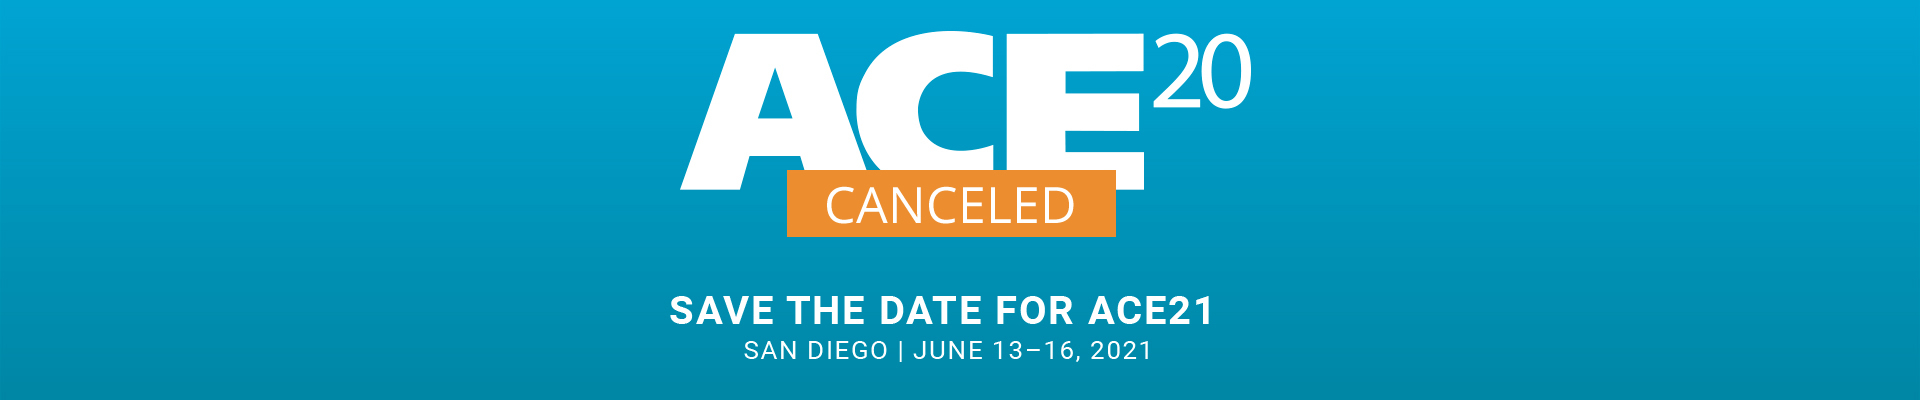 AWWA ACE20 Cancelled